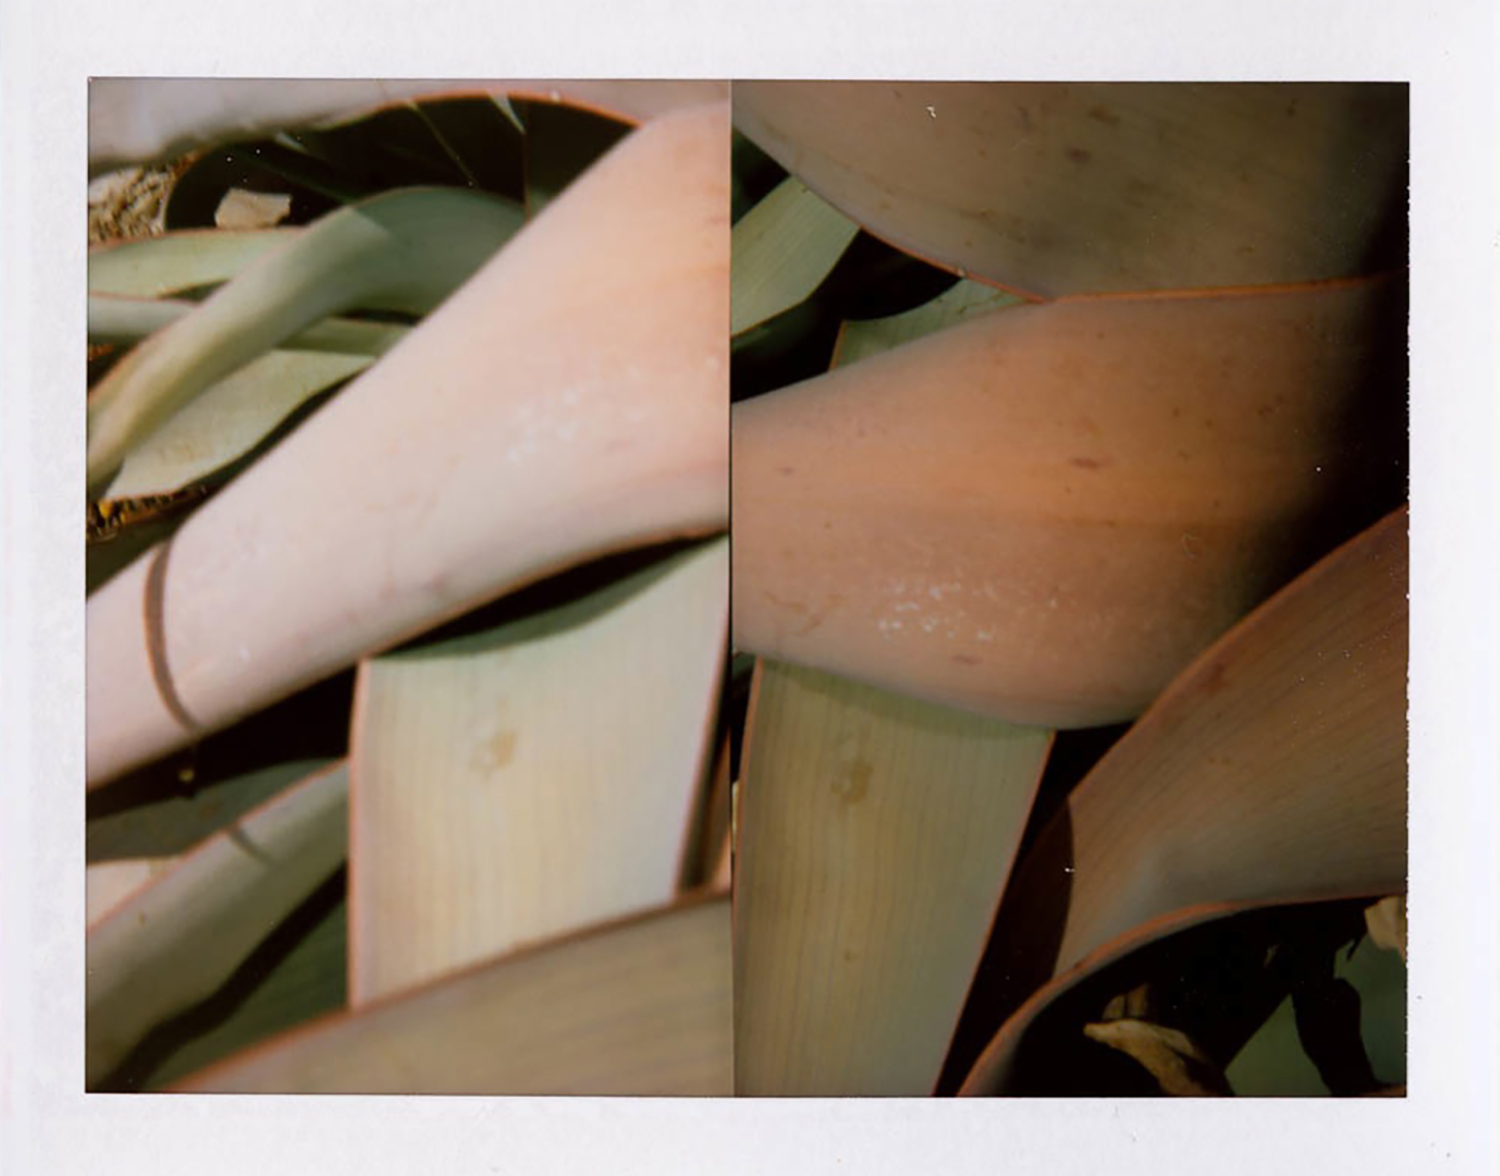 I.D.045, The Polaroid Revolutionary Workers, 2013, Polaroid Picture, 107mm x 86mm